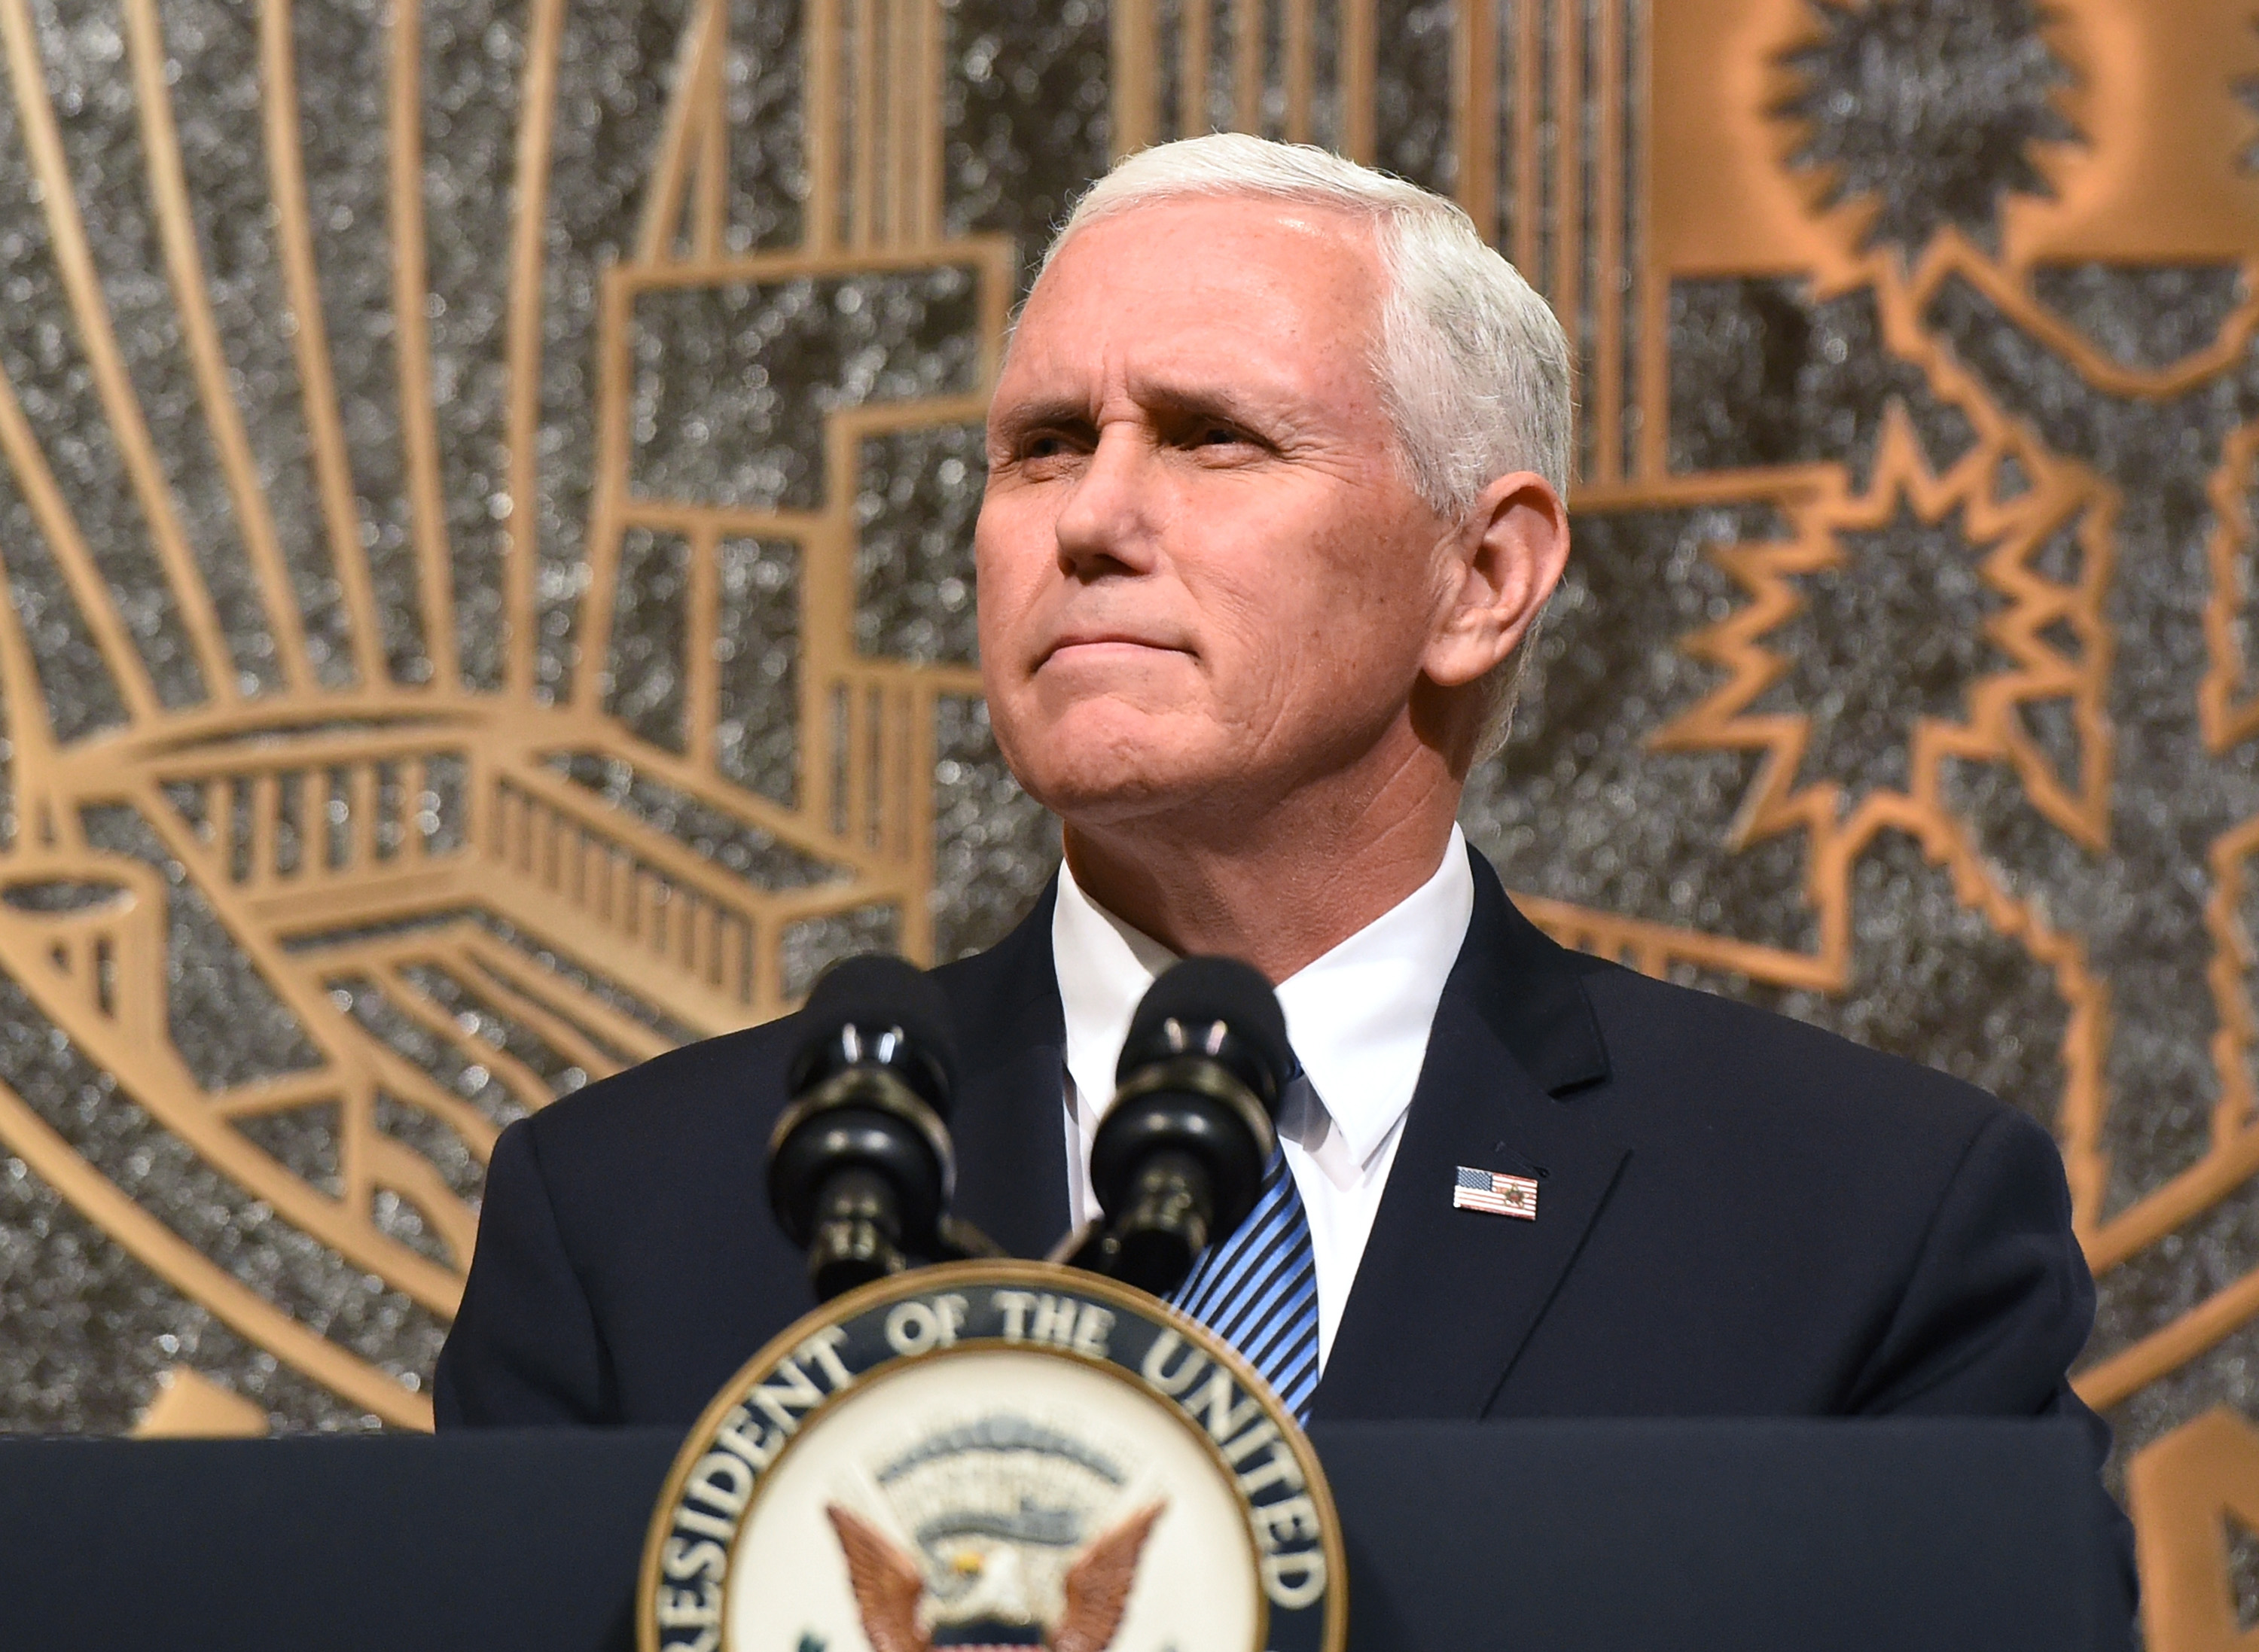 VP Pence leaves National Football League match over anthem 'disrespect'